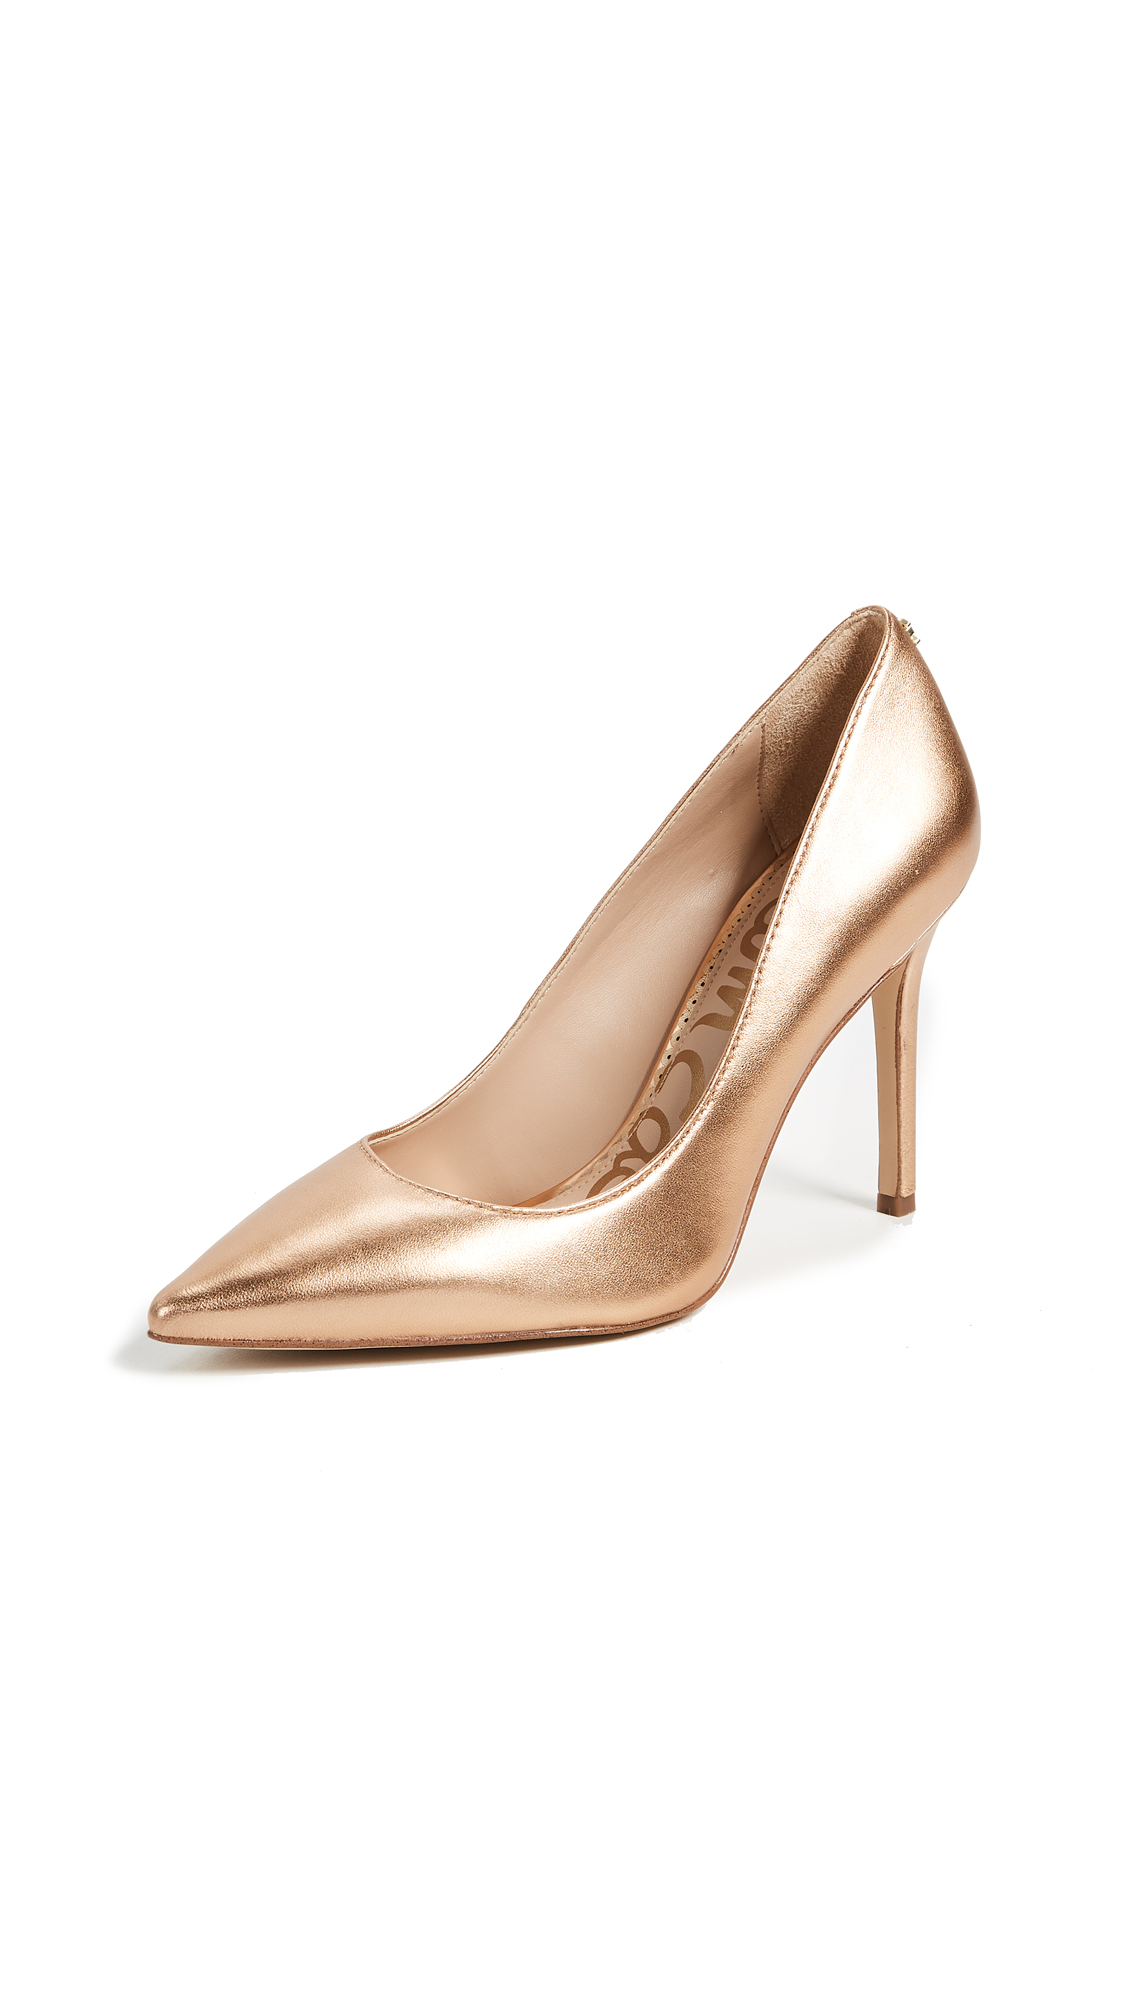 Sam Edelman Hazel Pumps - Golden Copper